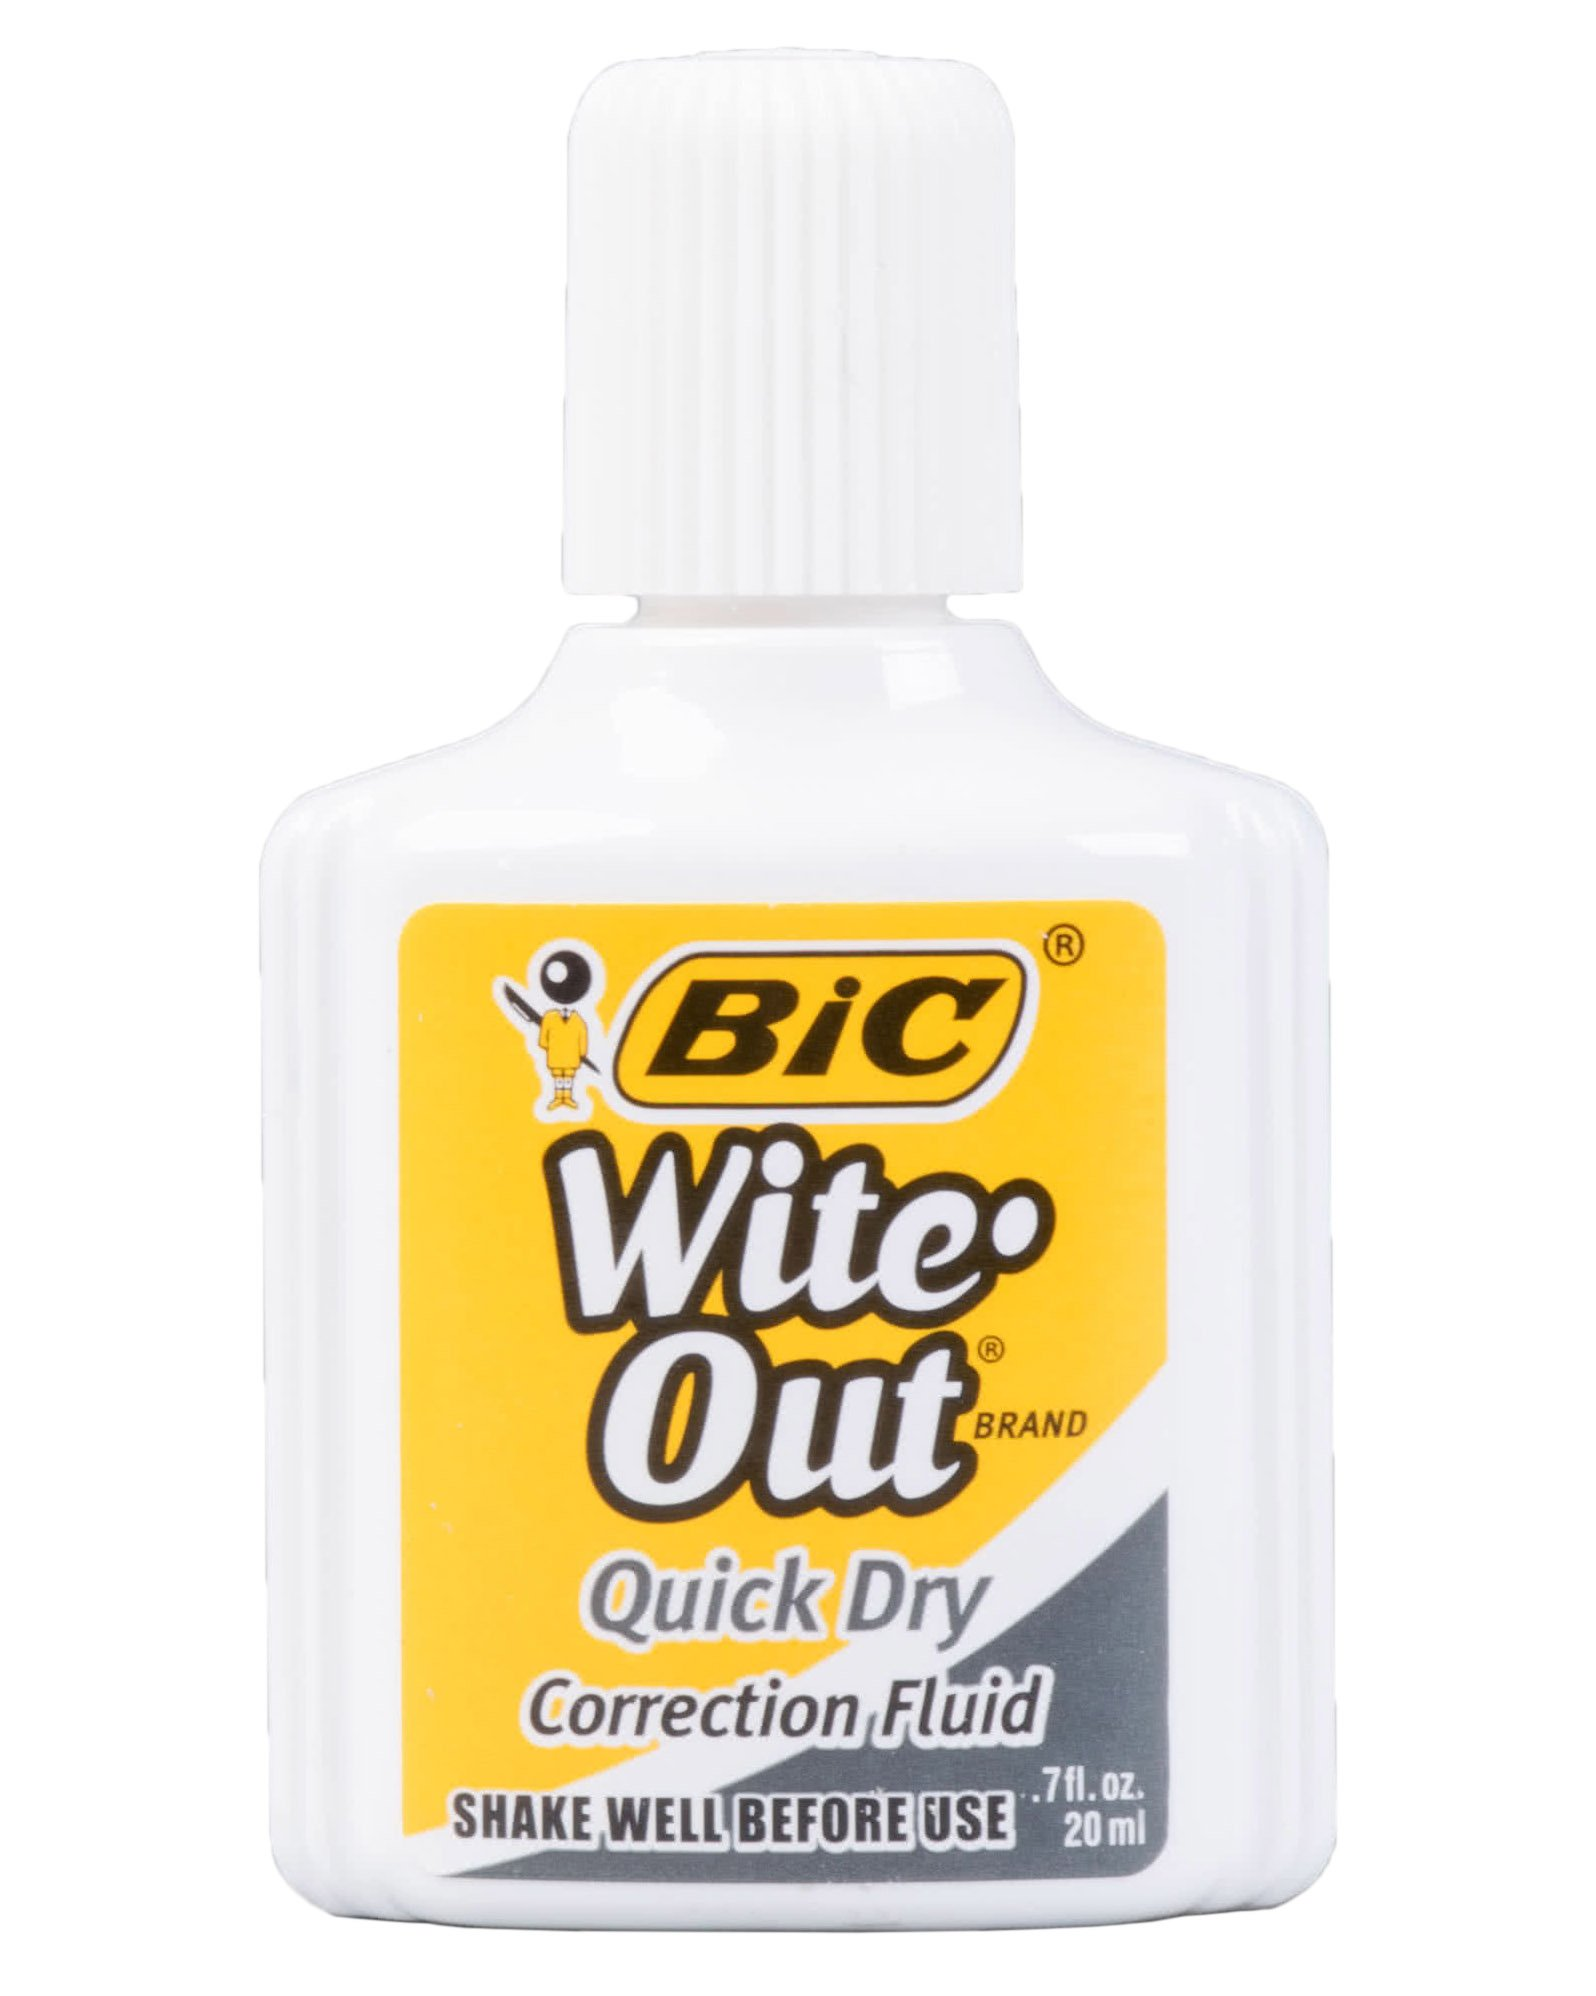 Set of 4 Wite-Out Quick Dry Correction Fluid -.7fl.oz./20ml per Bottle - Foam Wand Applicator - White - Works on Red and Dark Ink and Permanent Marker! by BicWite-Out (Image #2)